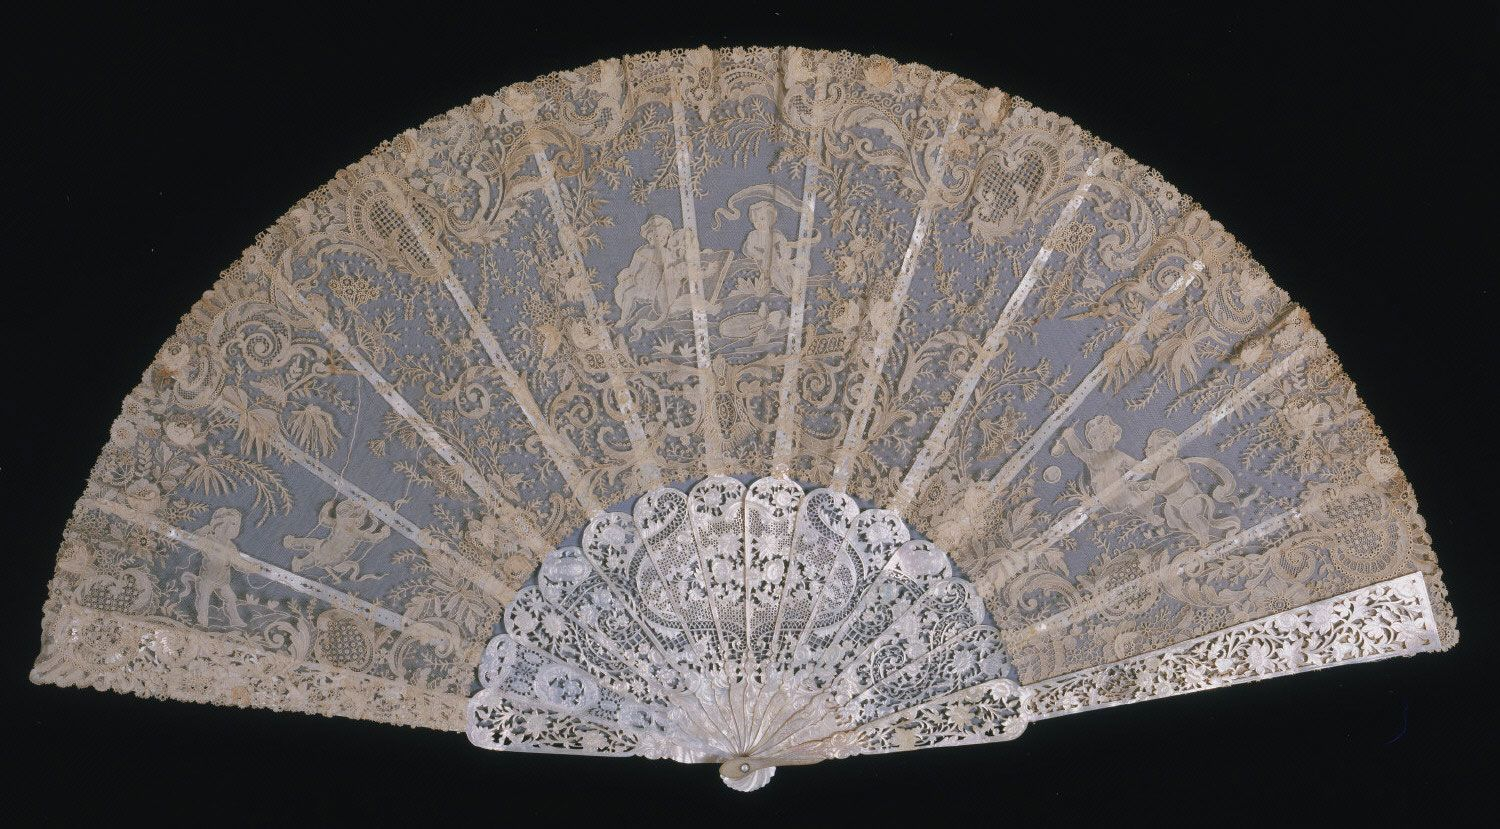 1880-1885, Belgium - Fan attributed to Léon Sacré - Point-de-gaze lace leaf; carved and pierced mother-of-pearl sticks and guards